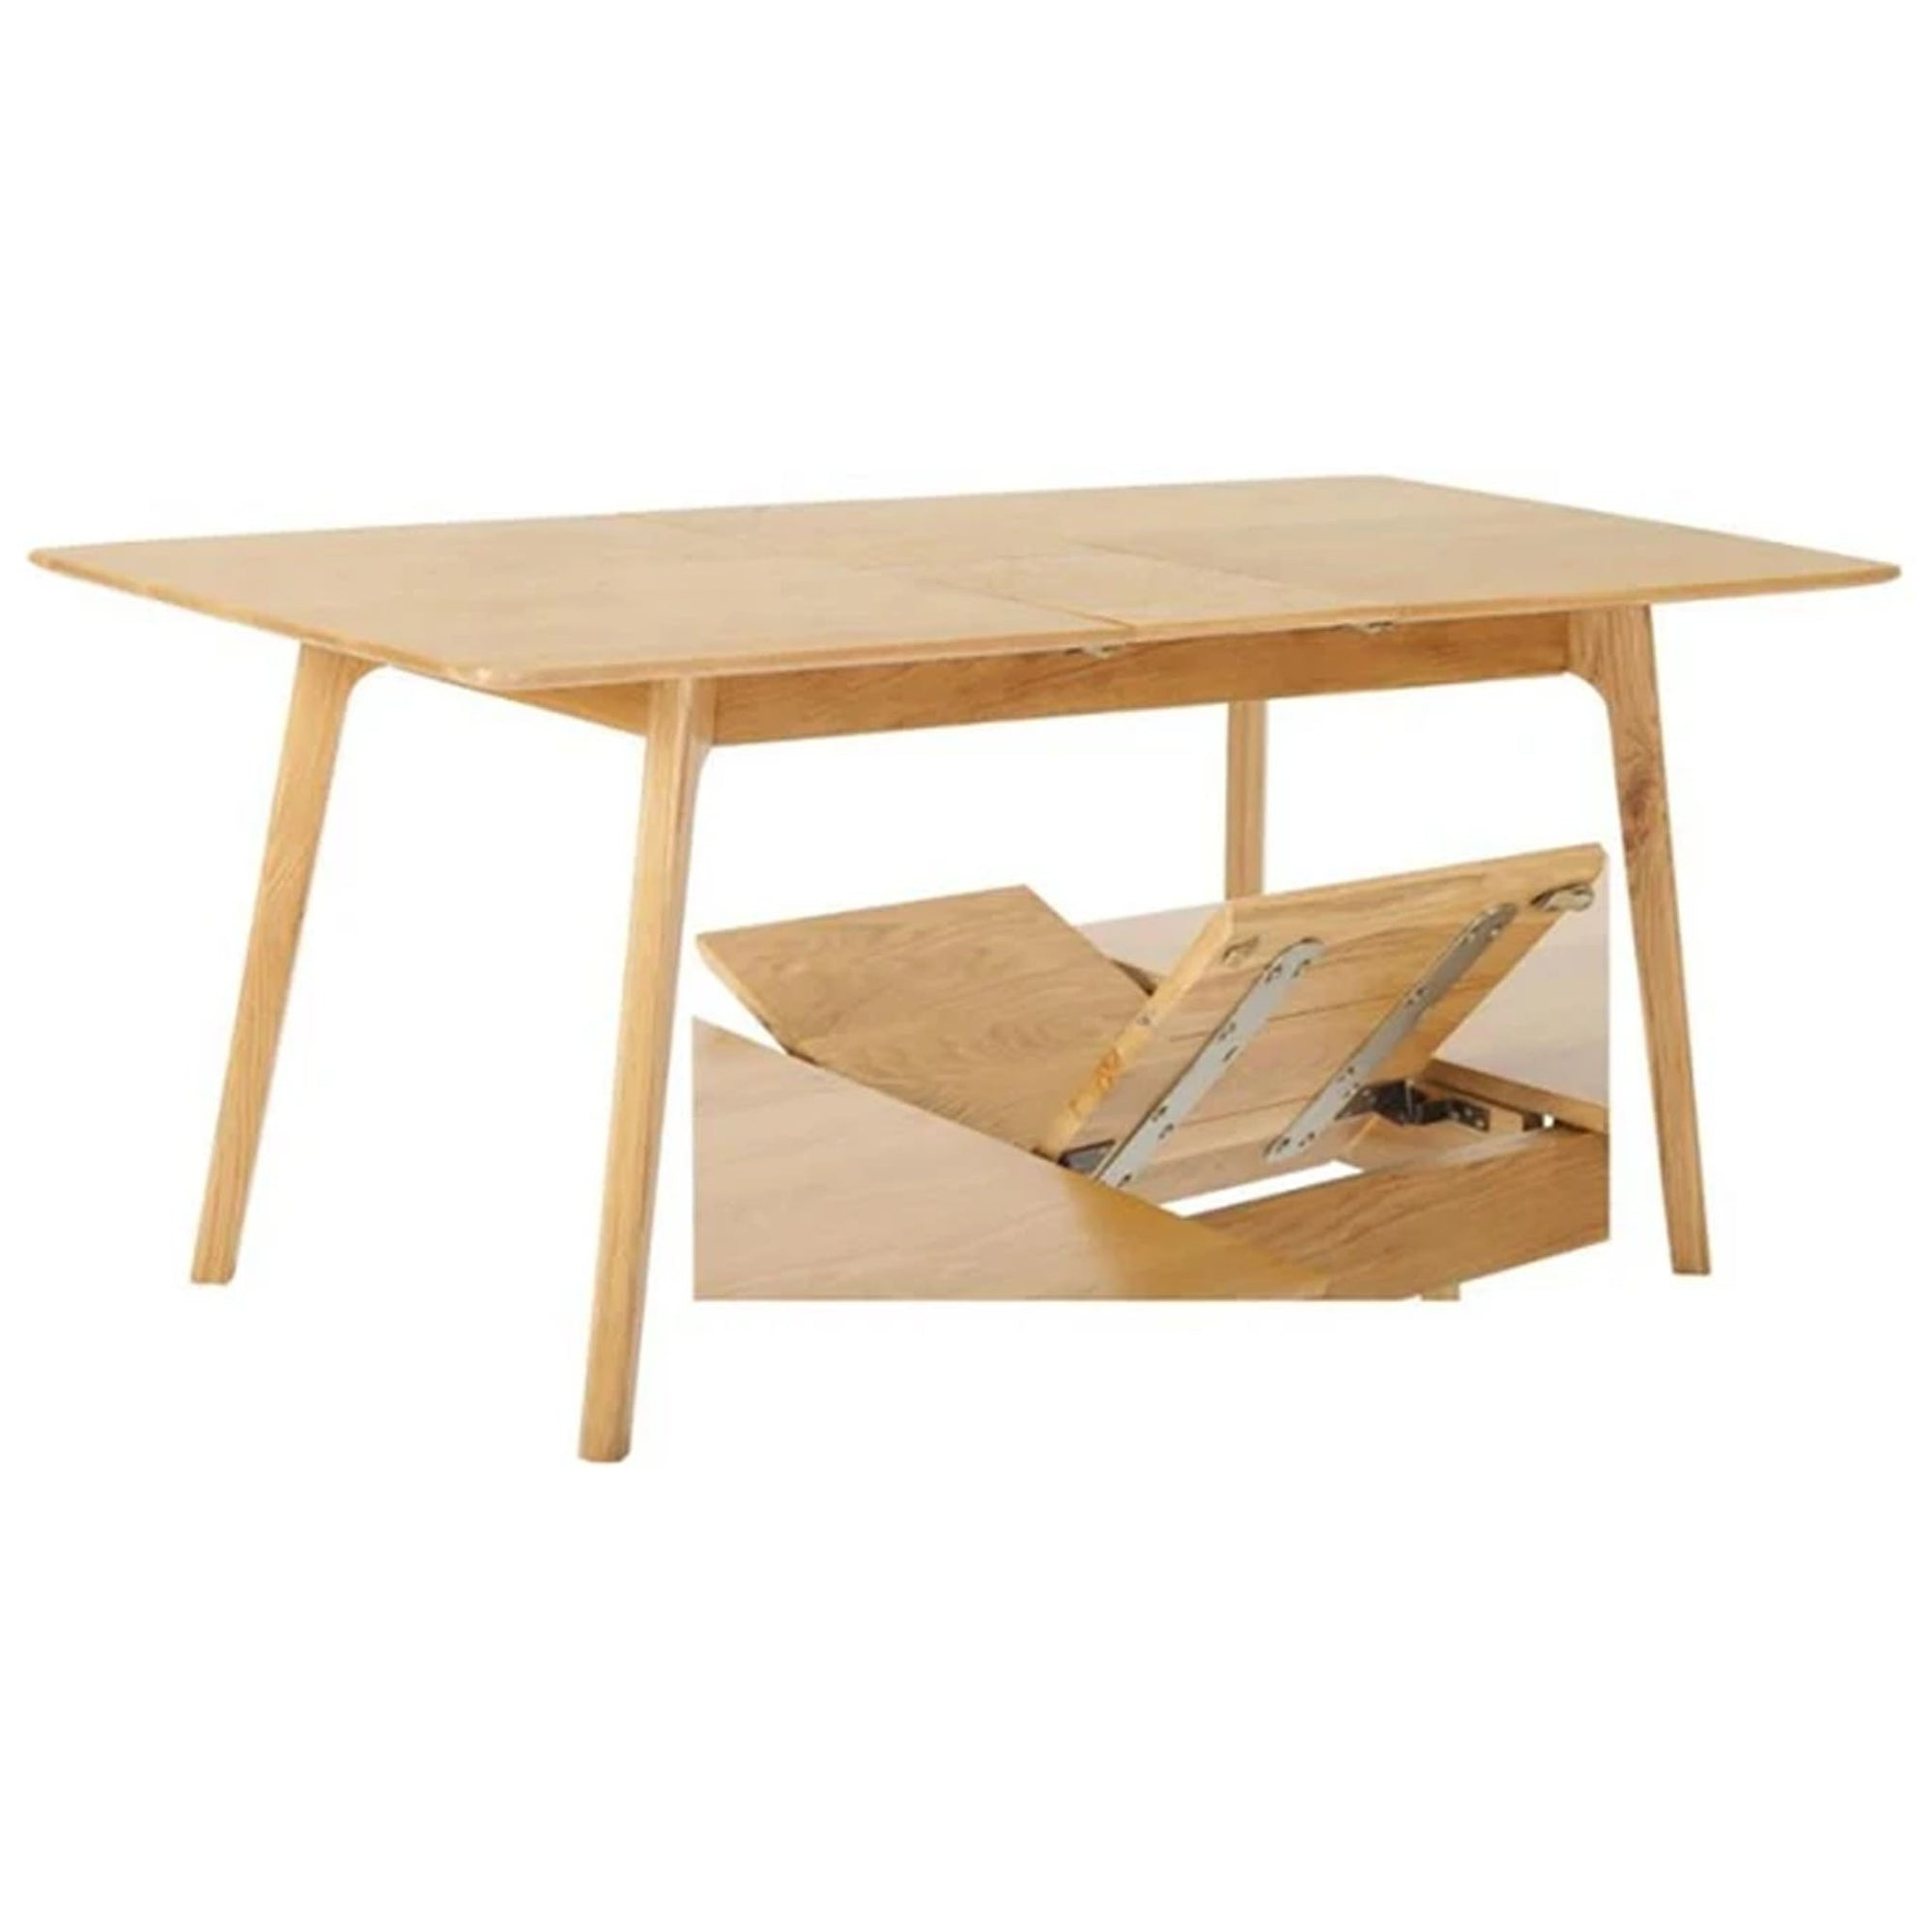 Nordic Oak Extending Table 130cm -160cm by Roseland Furniture